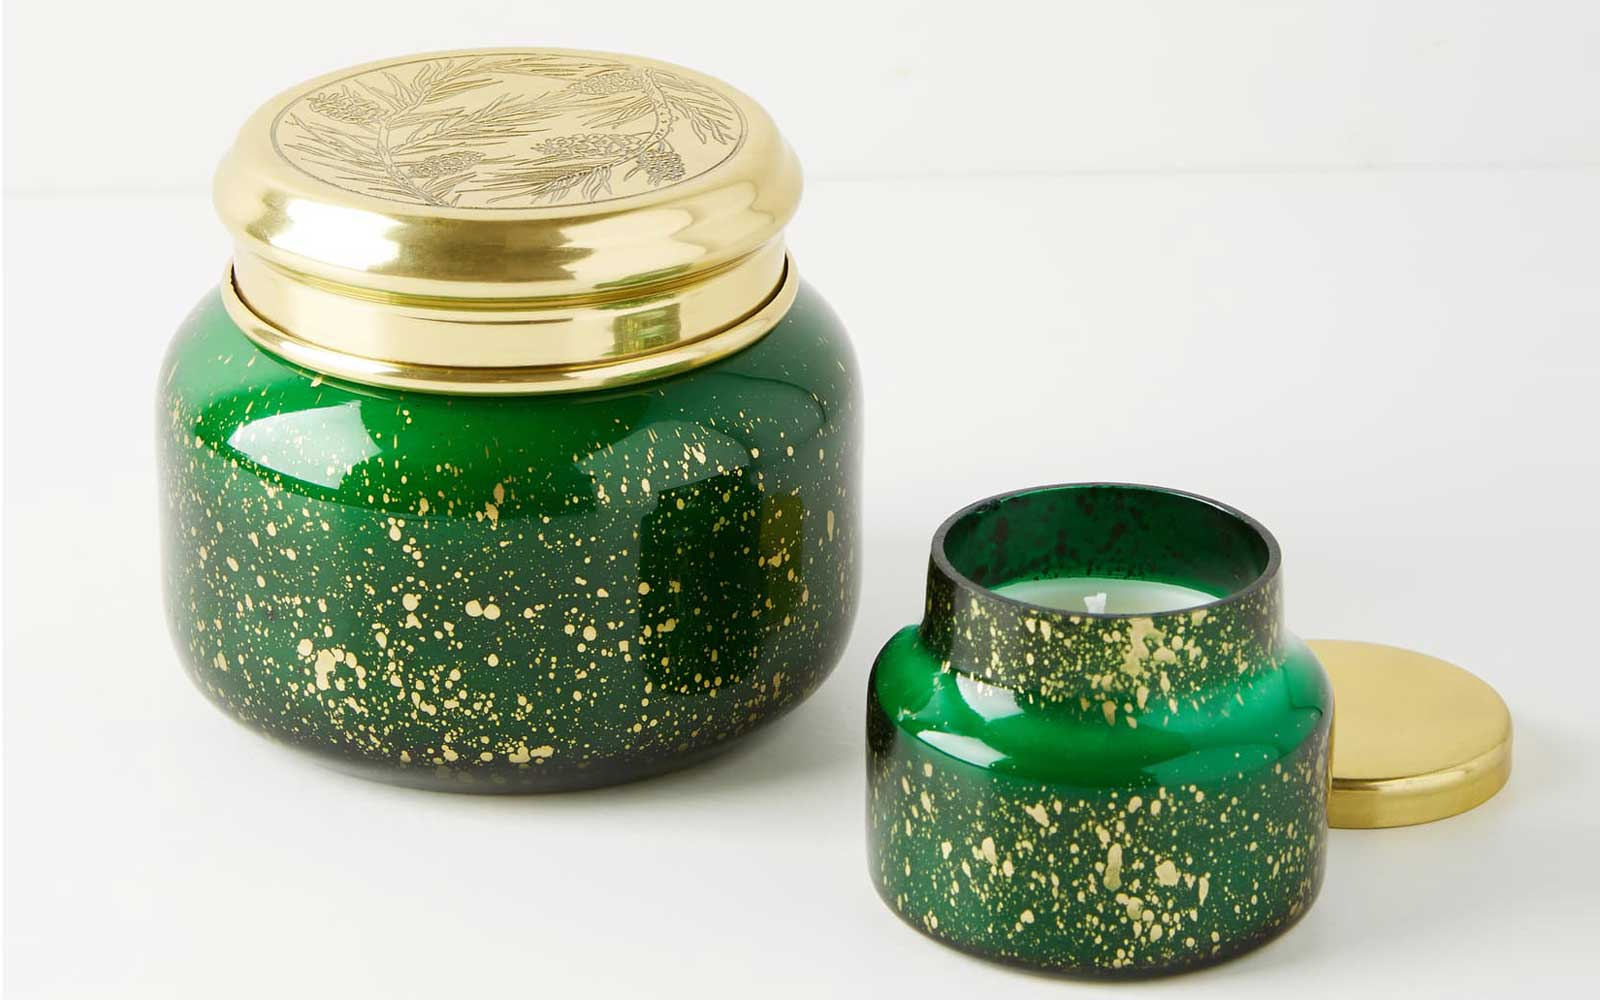 Green and Gold Candles in Glass Jars